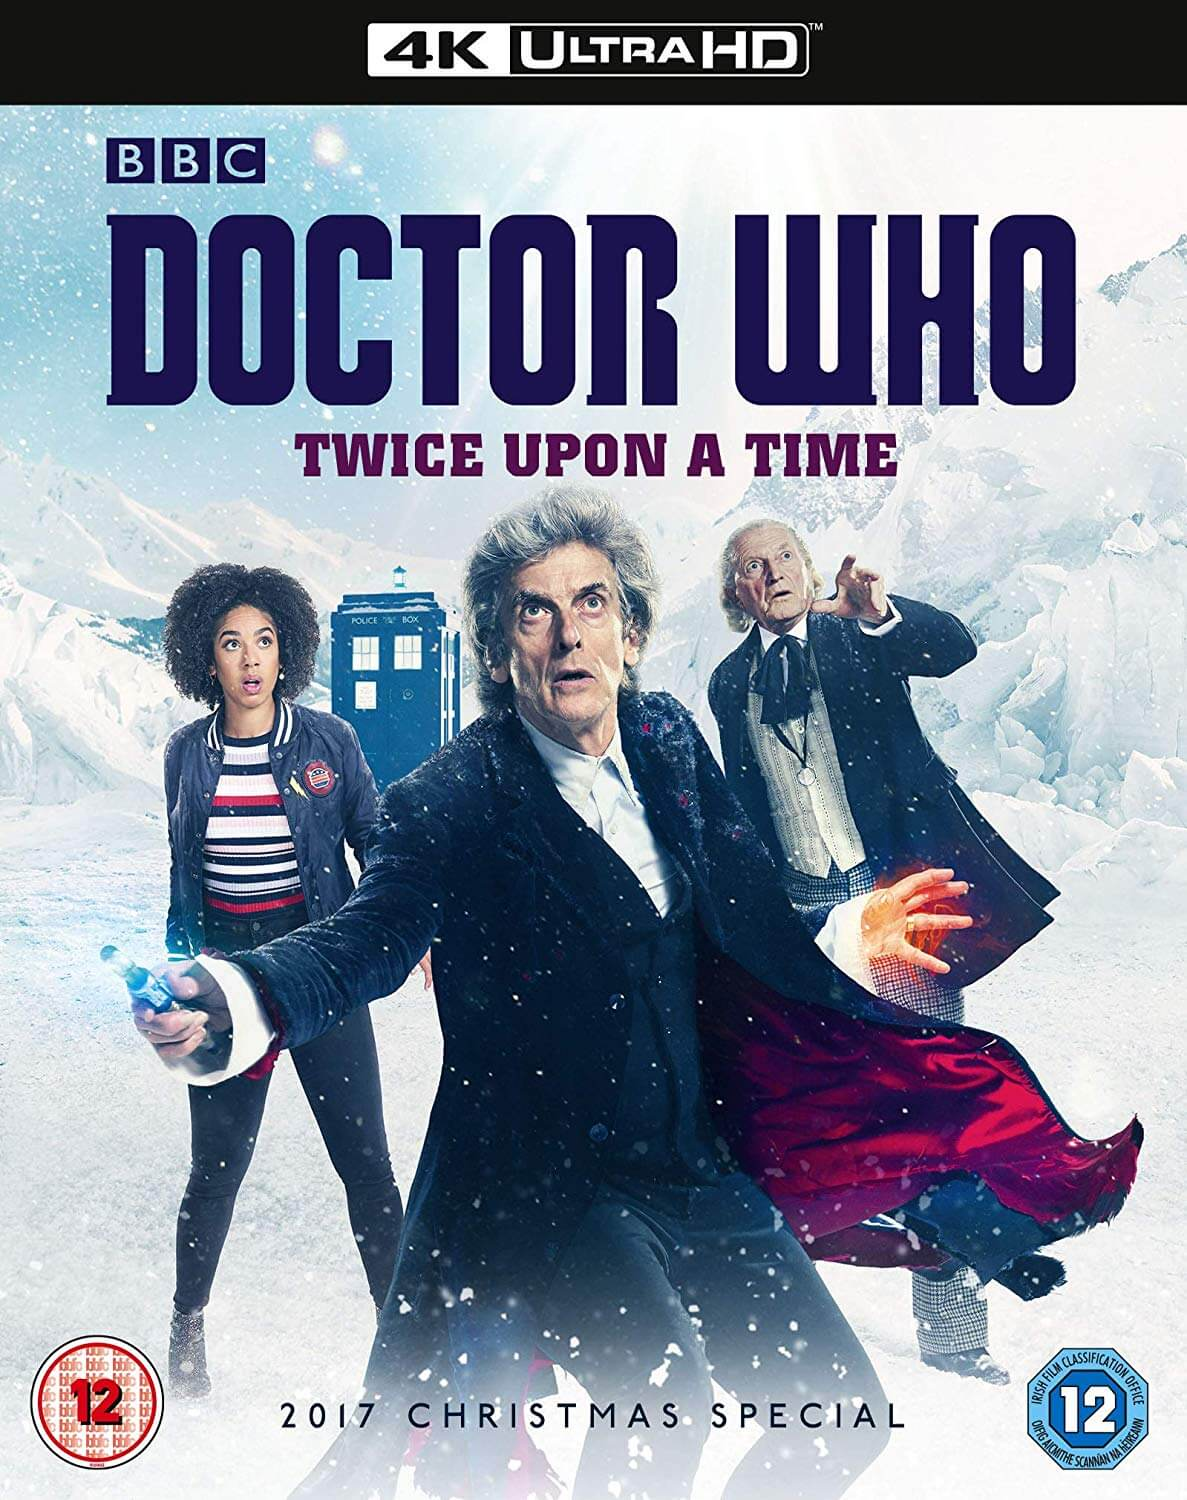 Dr Who Christmas Special.Doctor Who Christmas Special 2017 Twice Upon A Time 4k Ultra Hd